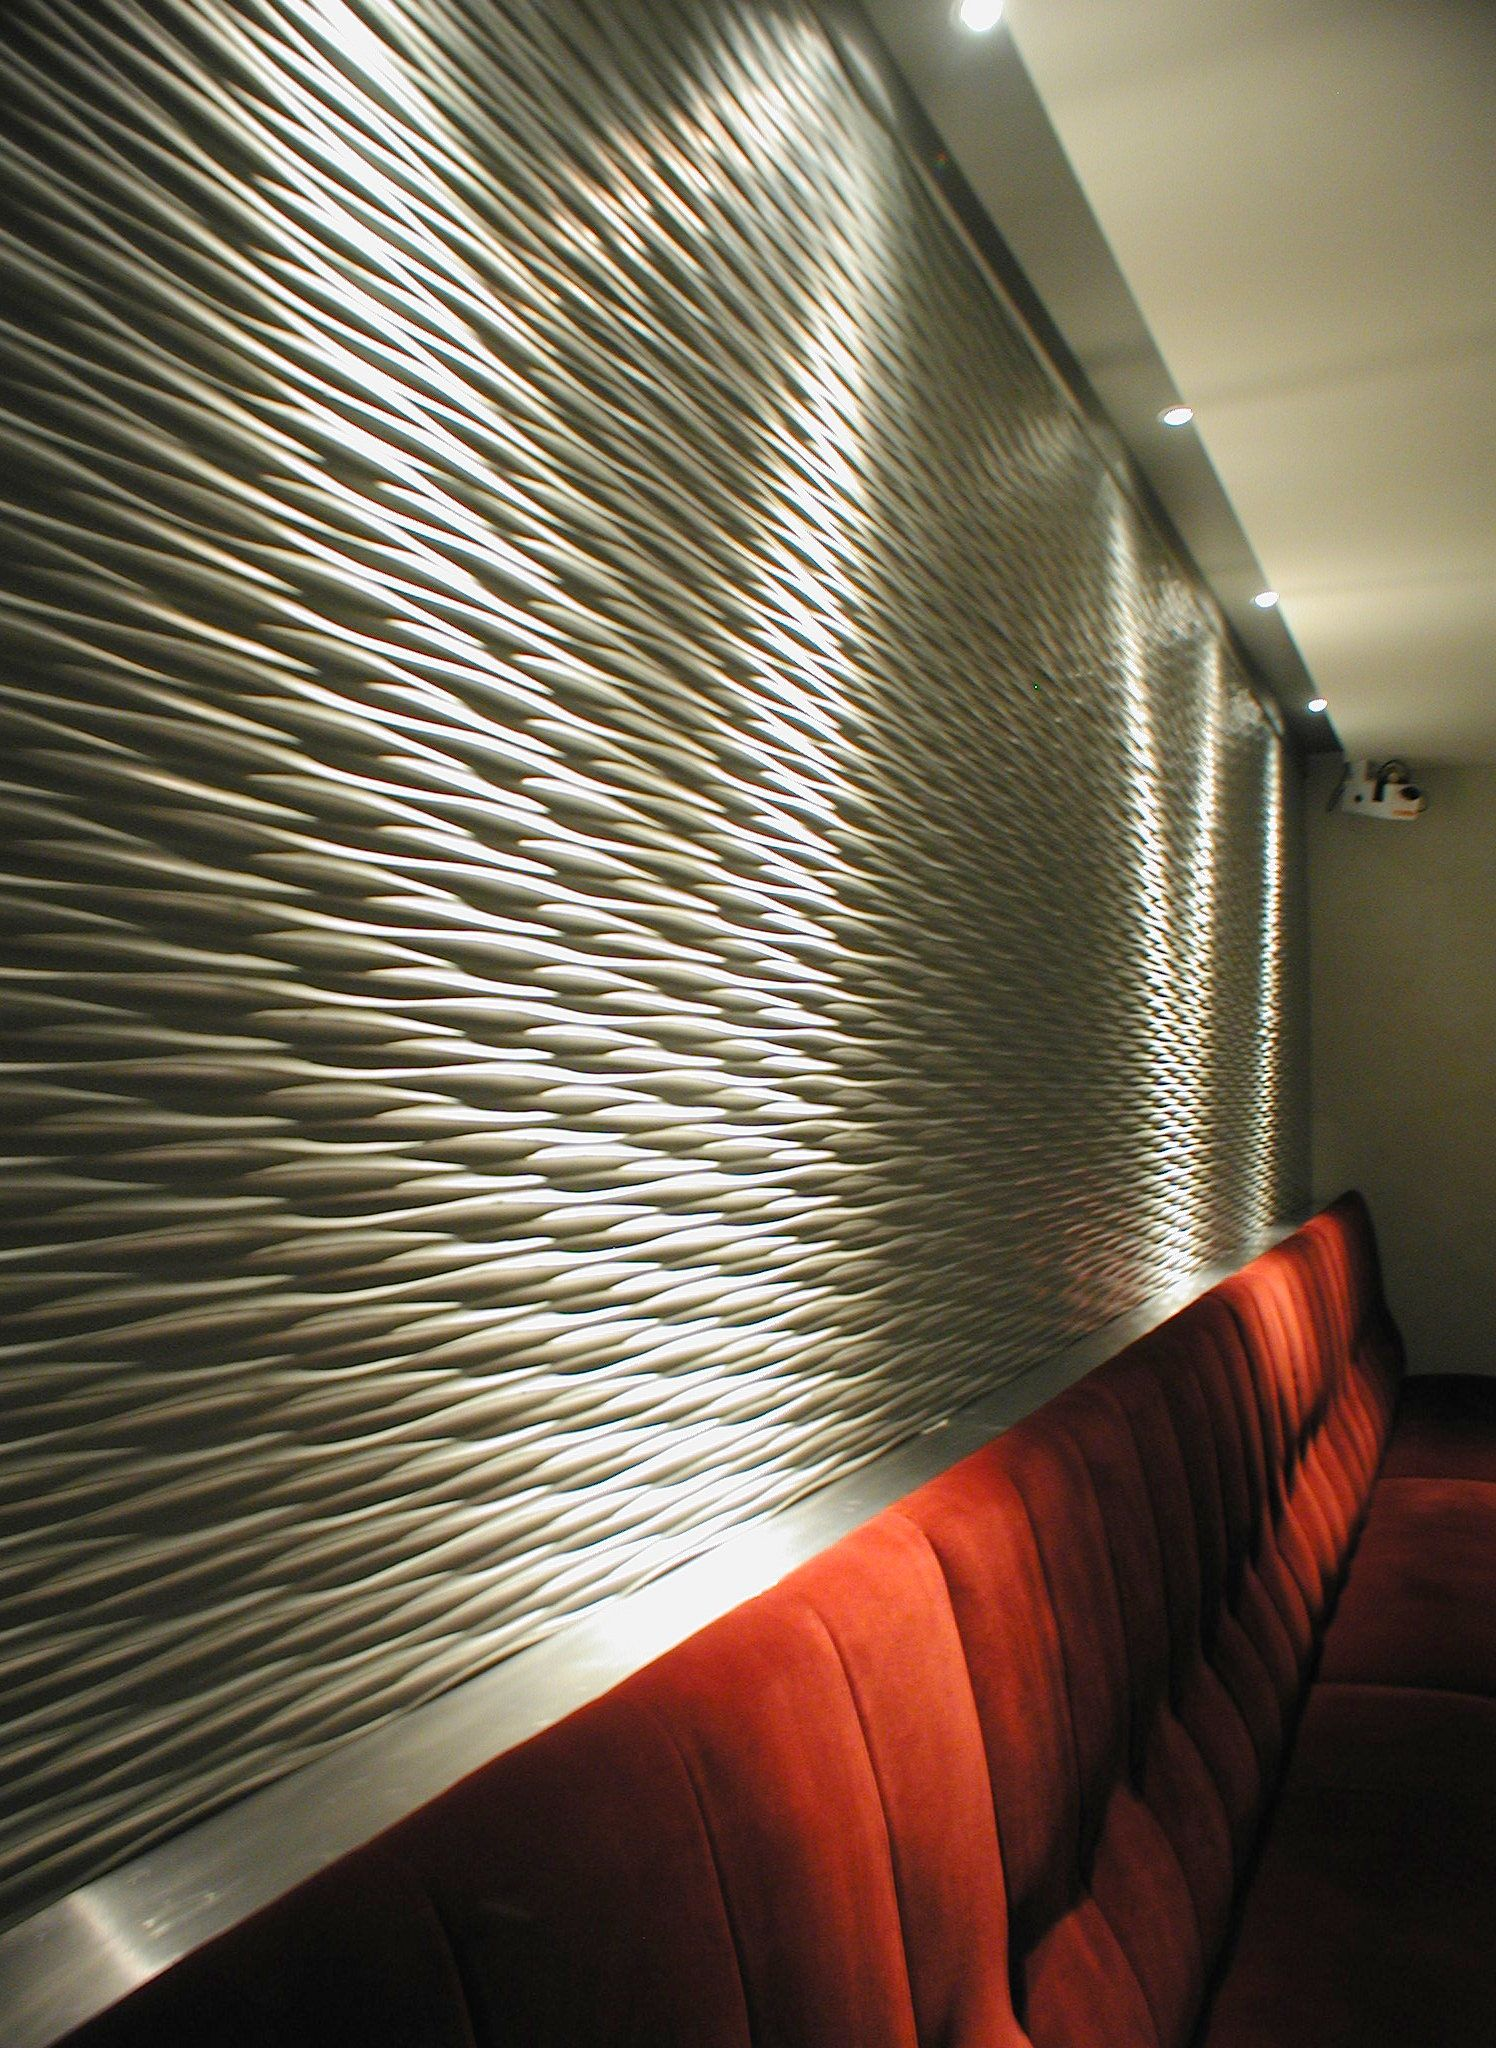 Routed Panel Are An Exciting Range Of Decorative Textured Wall Panels With Patterns Carved Into Their S Textured Wall Panels Wall Paneling Feature Wall Design